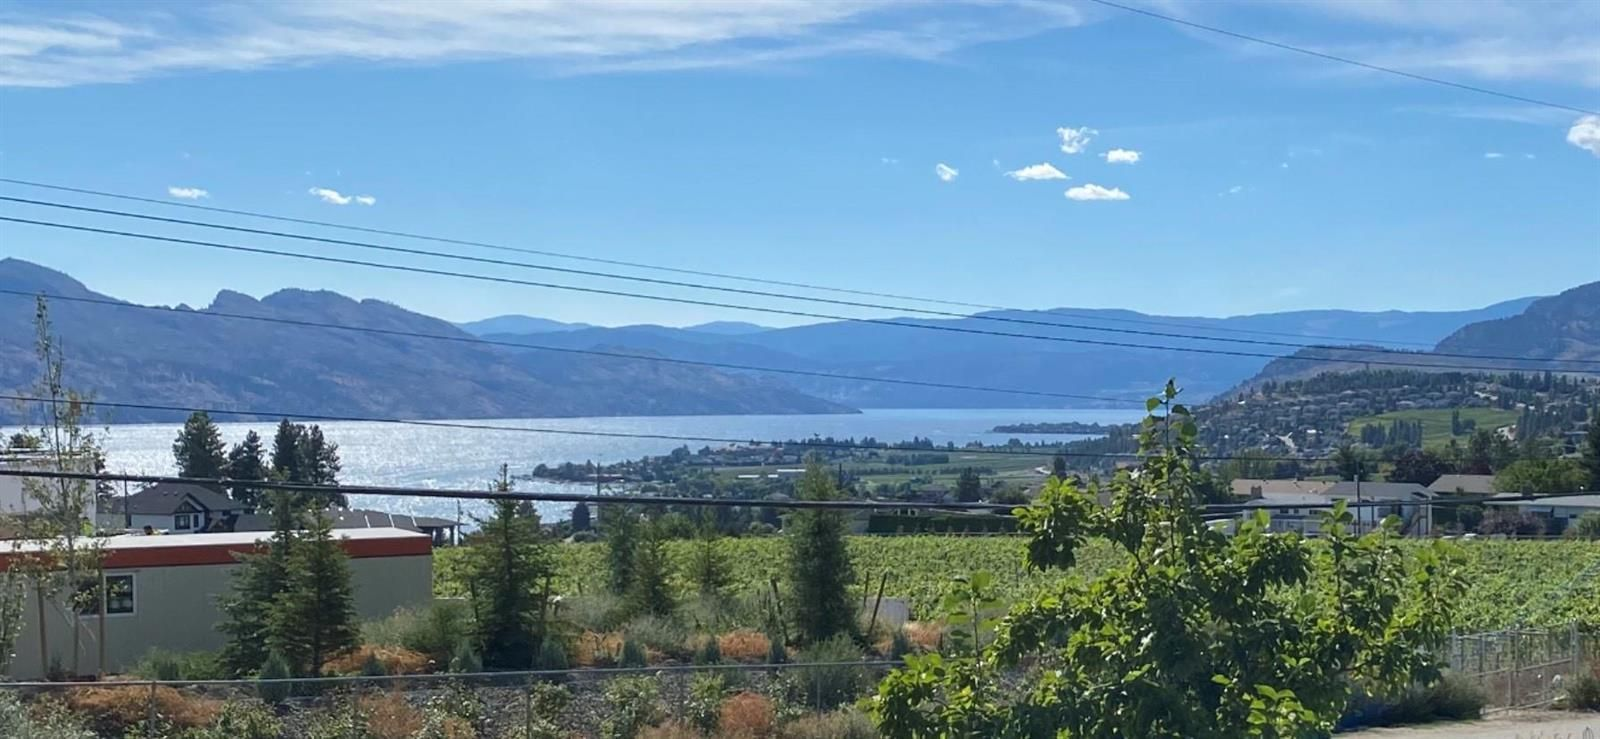 Main Photo: 800 Montigny Road, in West Kelowna: House for sale : MLS®# 10239470